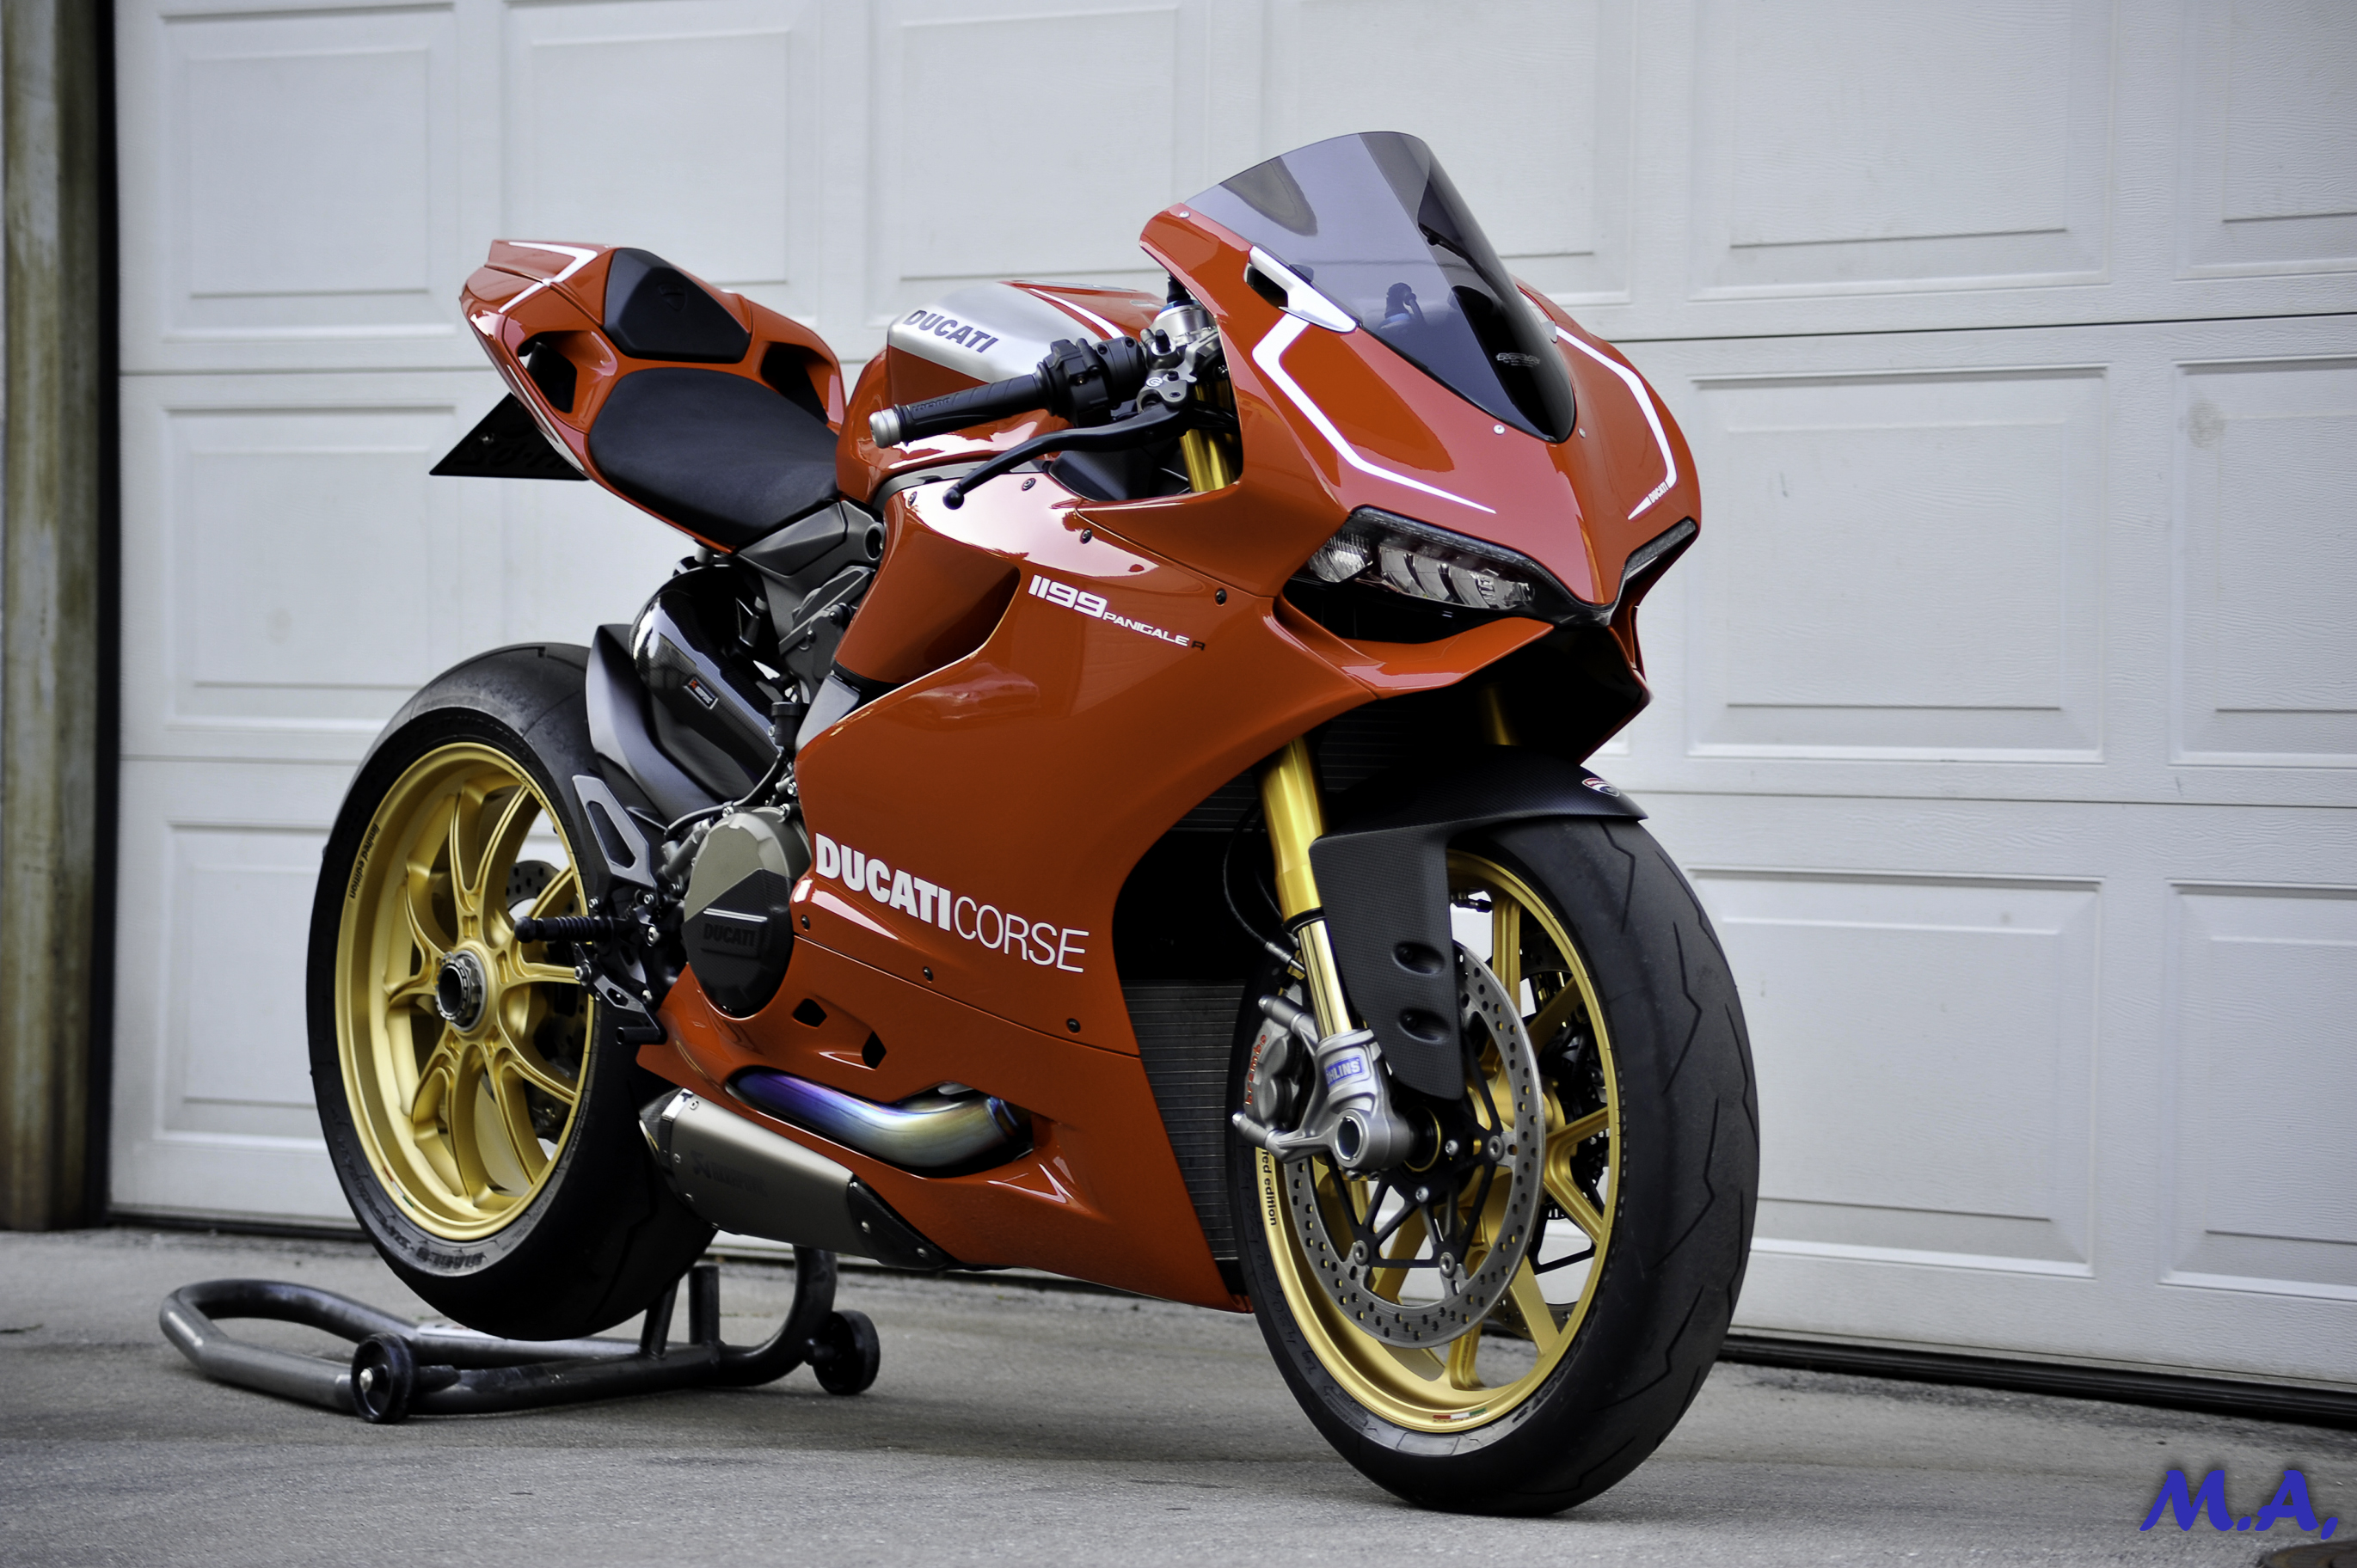 panigale picture thread - page 139 - ducati 1299 forum